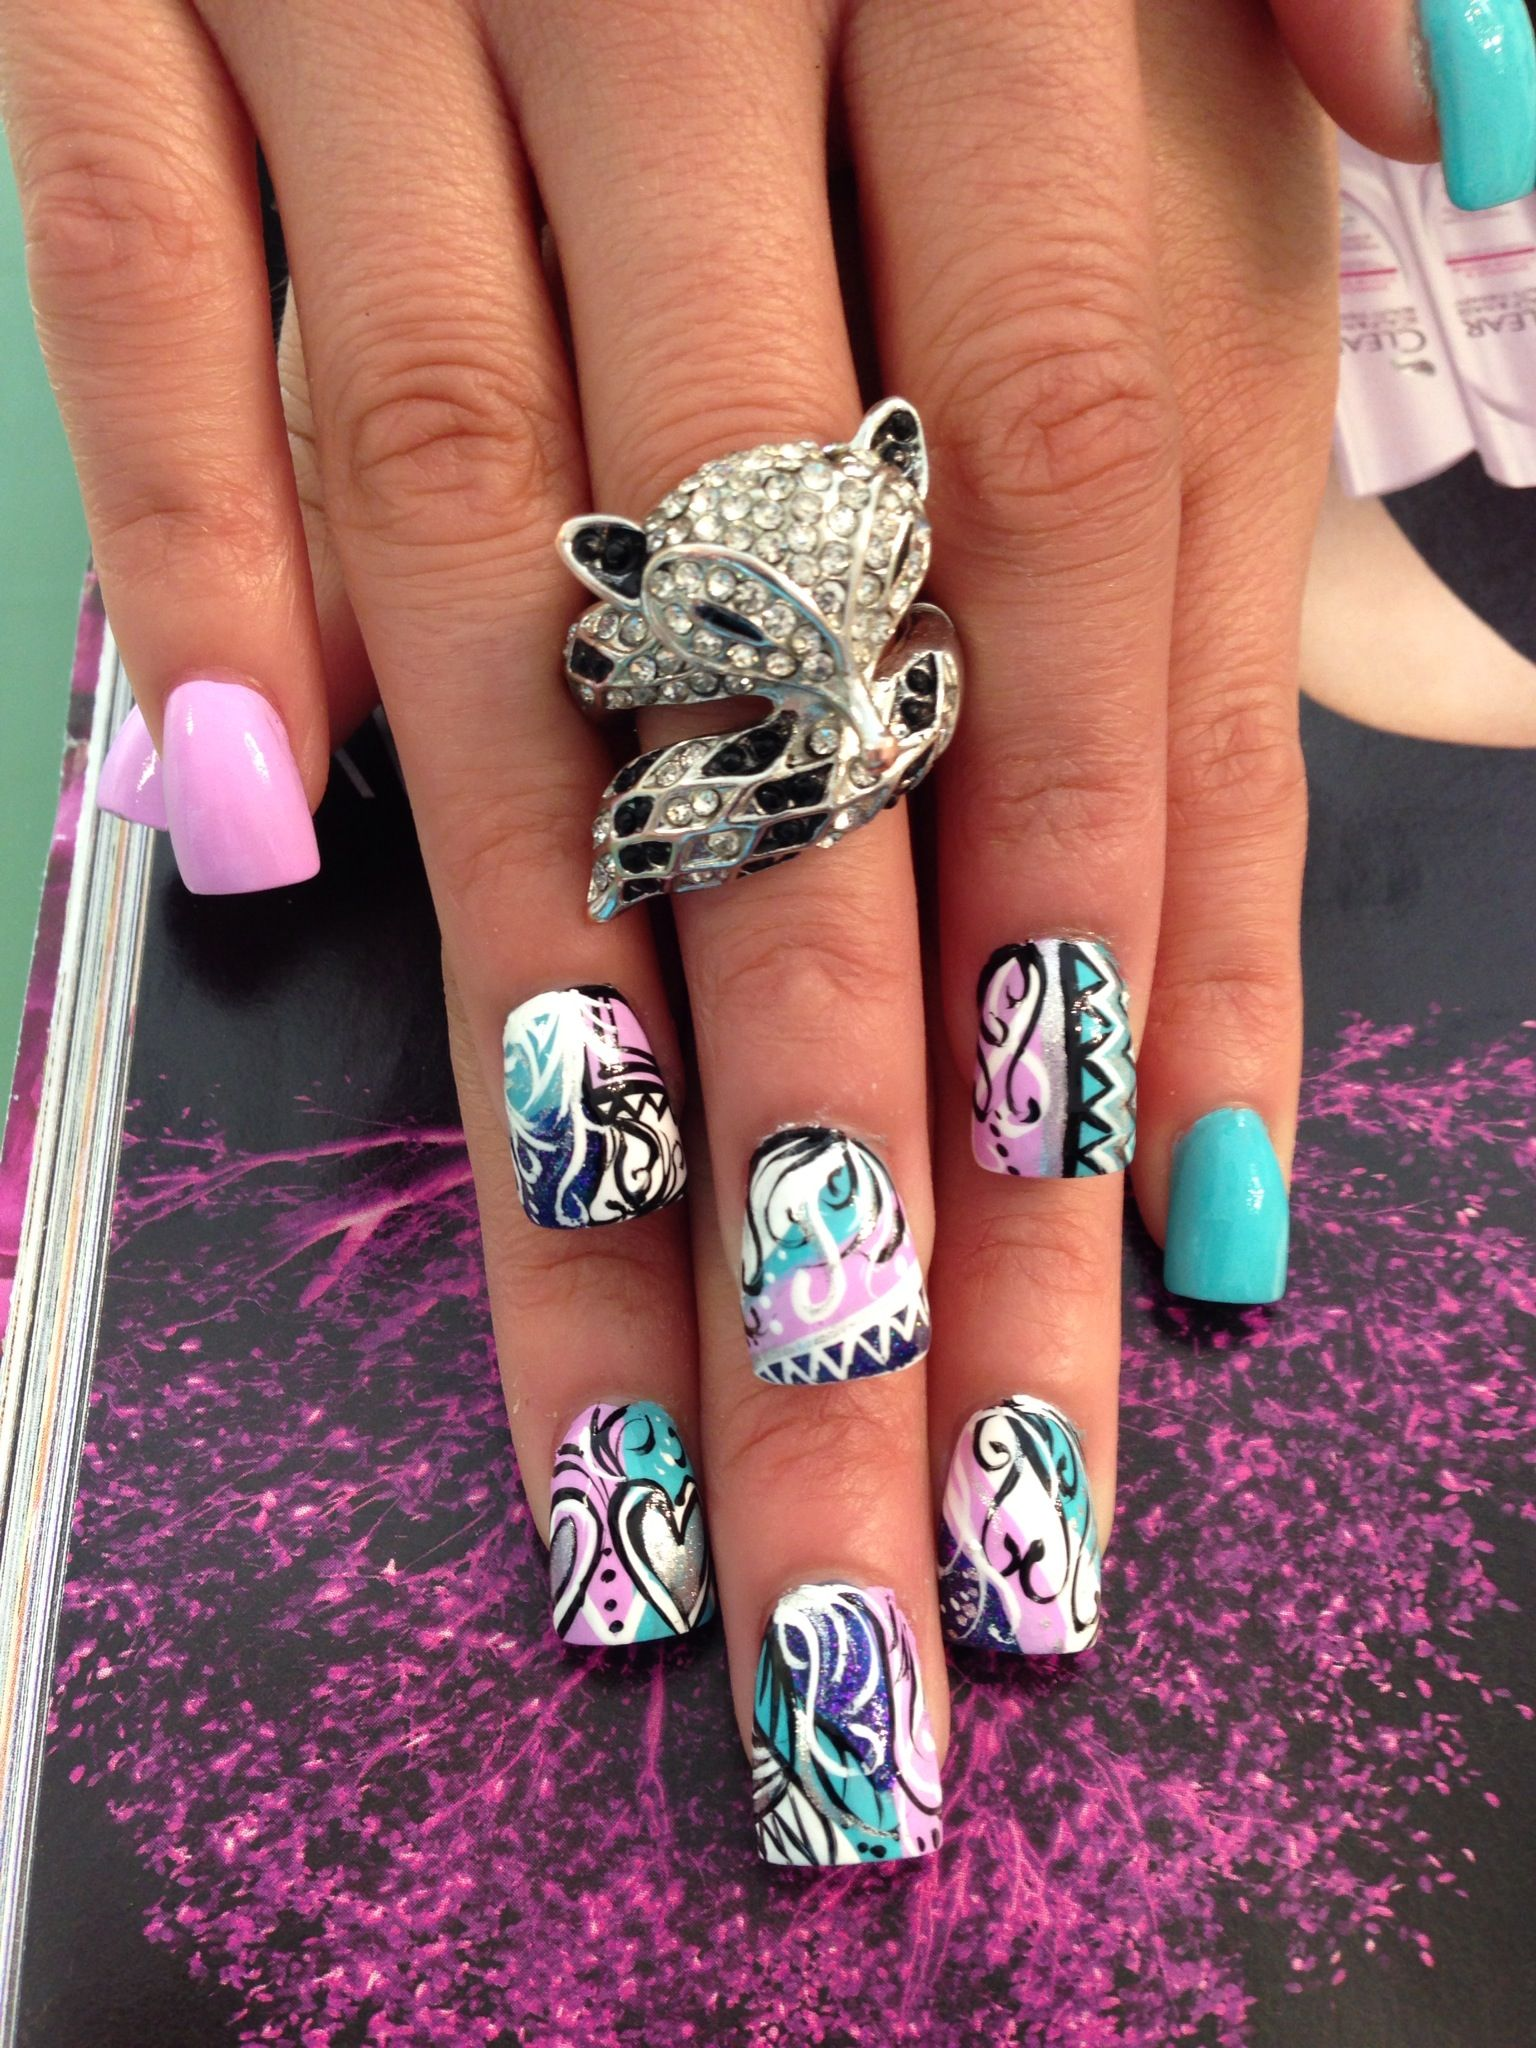 Nail design by The Nail Forum in Selden. Please call 631 716 0088 ...